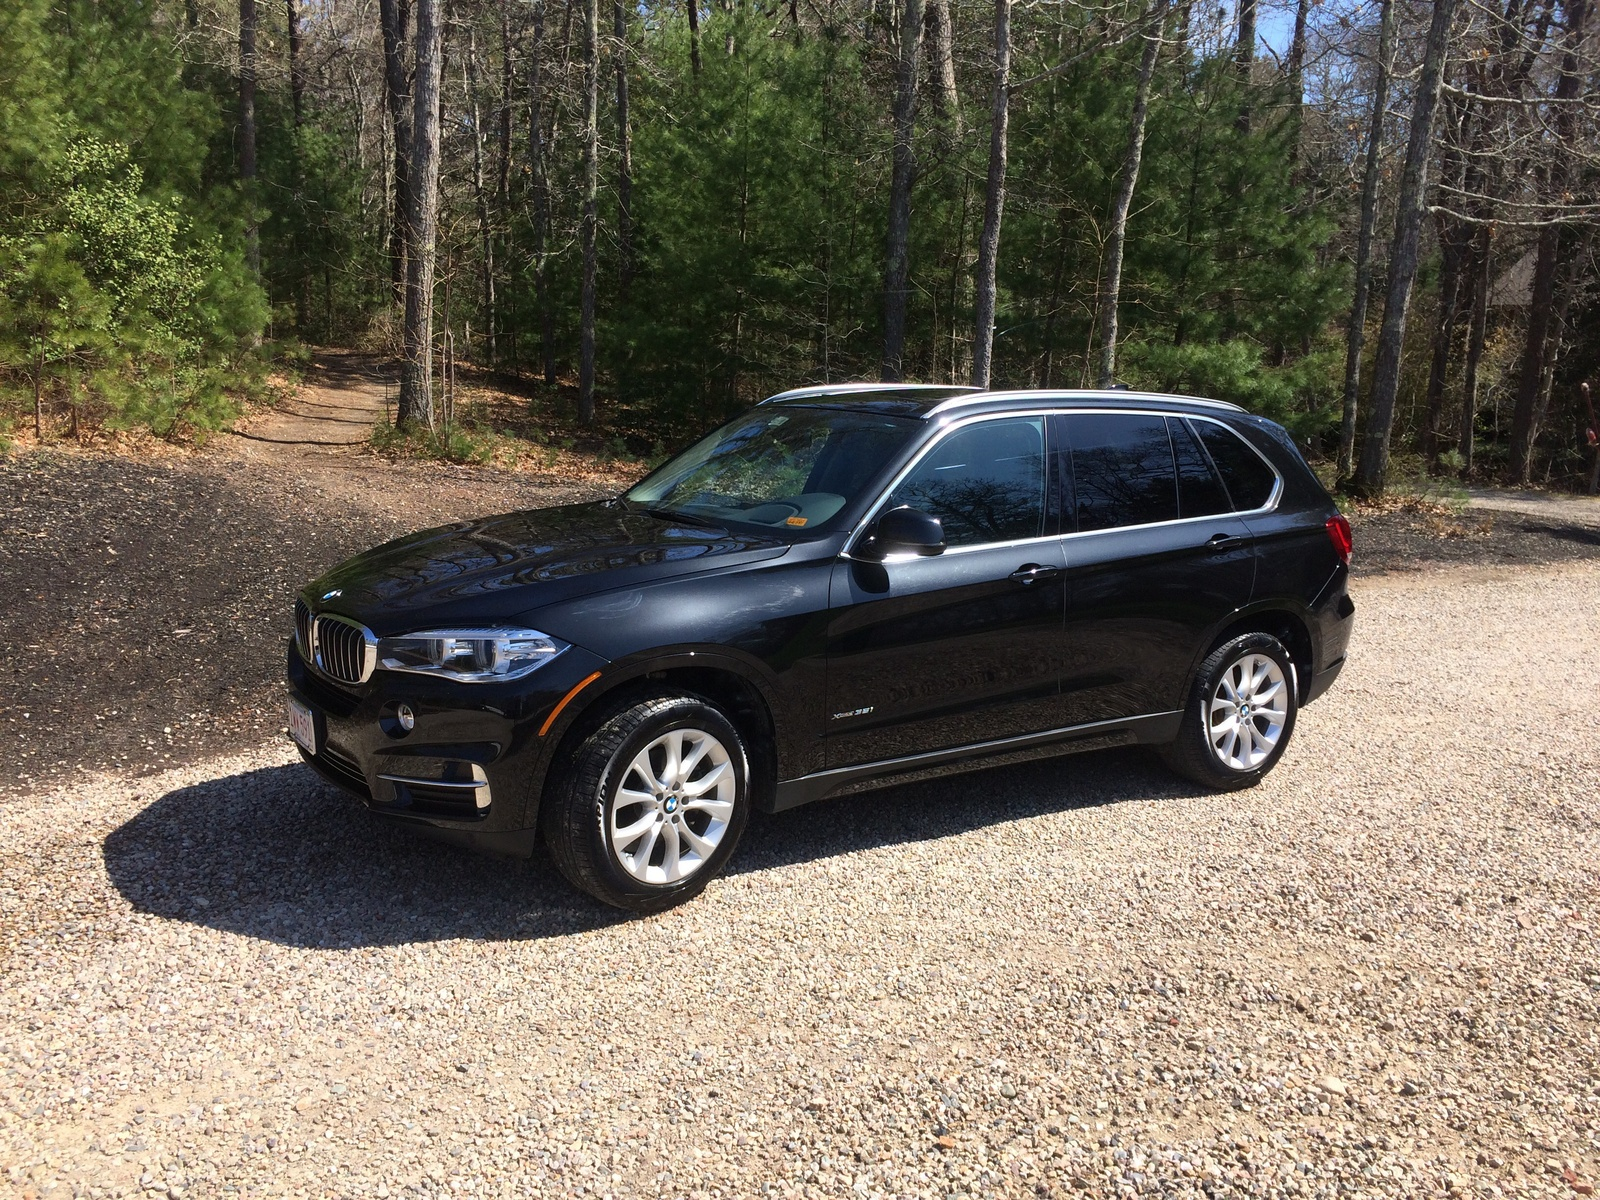 new 2015 2016 bmw x5 for sale cargurus canada. Black Bedroom Furniture Sets. Home Design Ideas